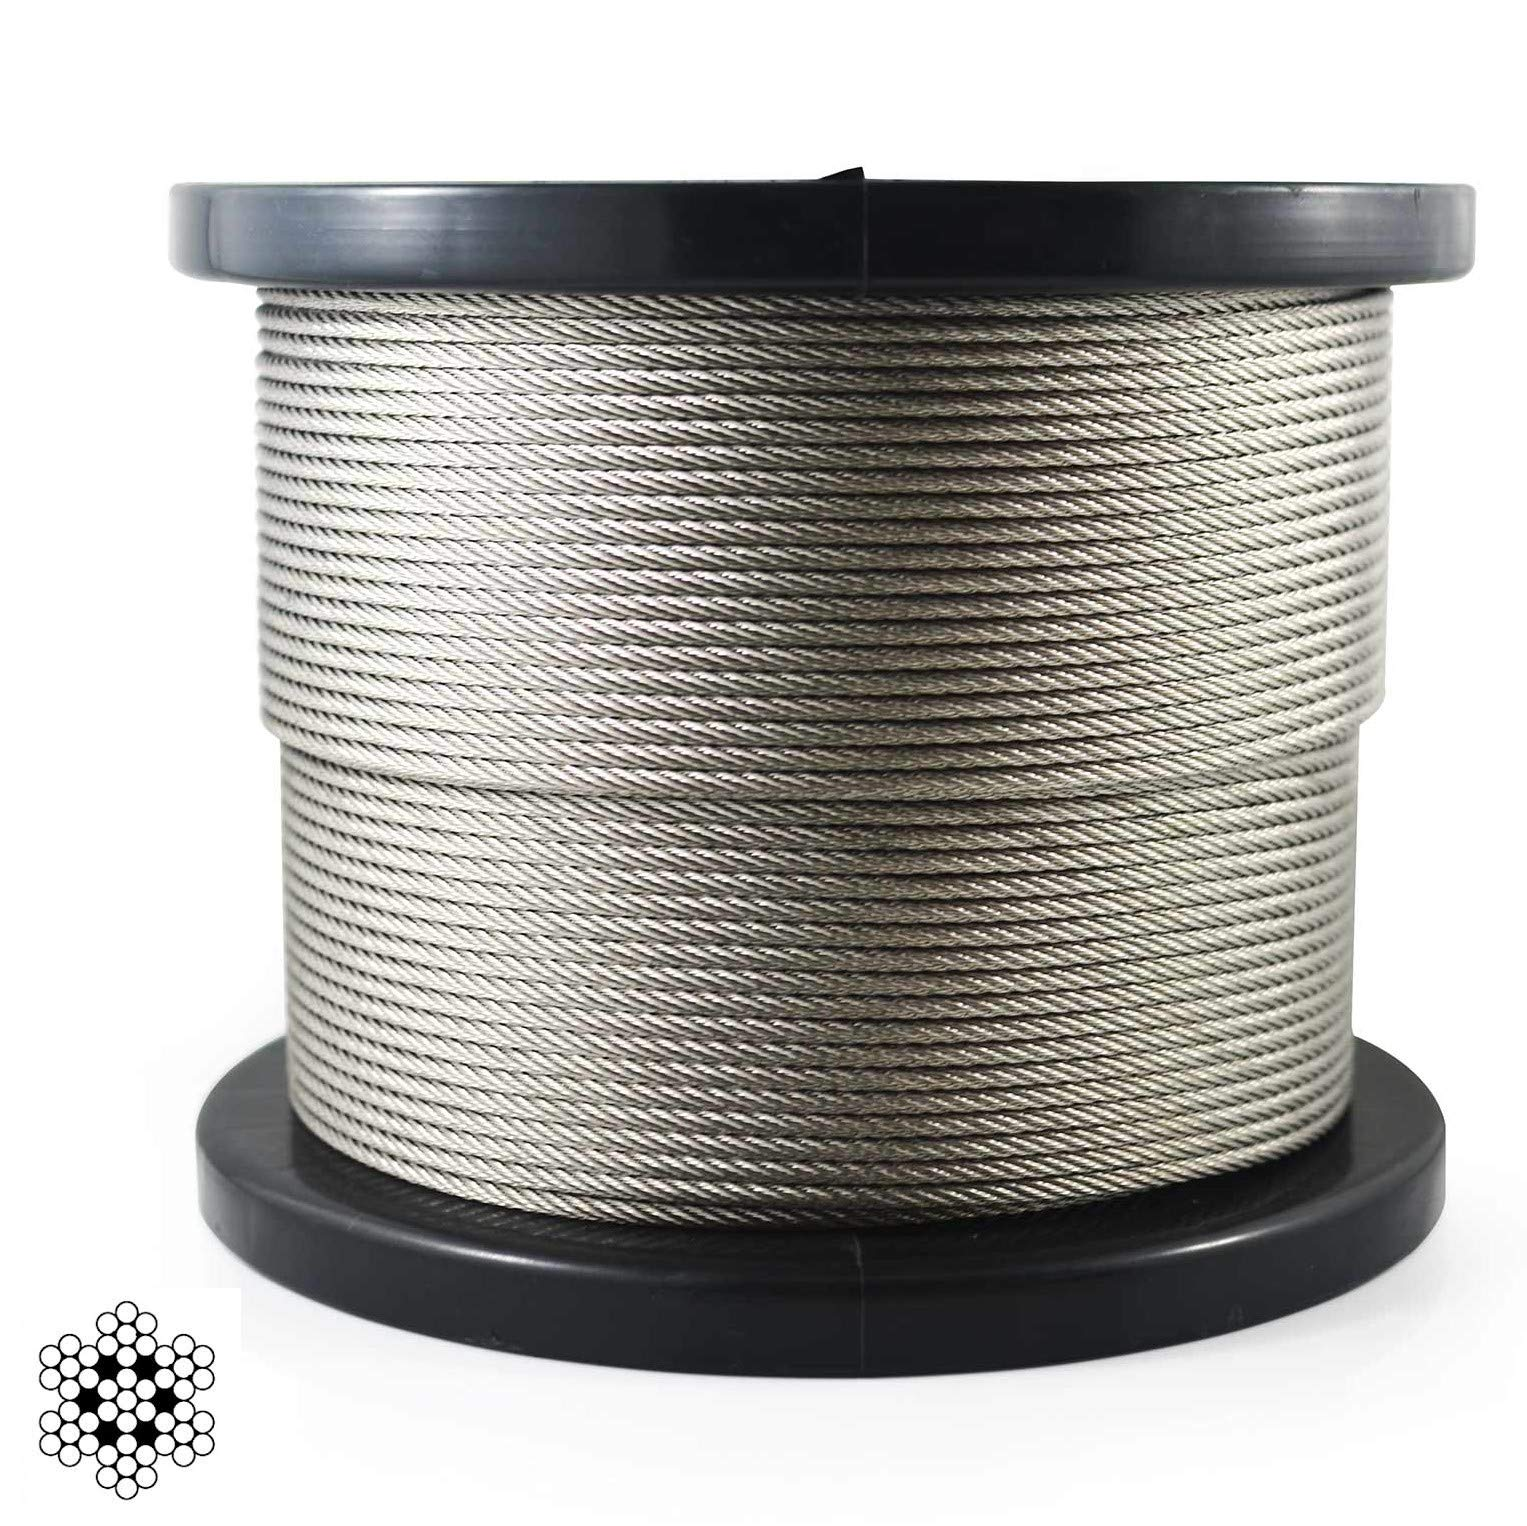 300 ft  1/8 inch Stainless Steel Aircraft Wire Rope   7x7 Deck Cable Railing Cable   300 feet   7X7 T316 Marine Grade by Naviers (Image #1)